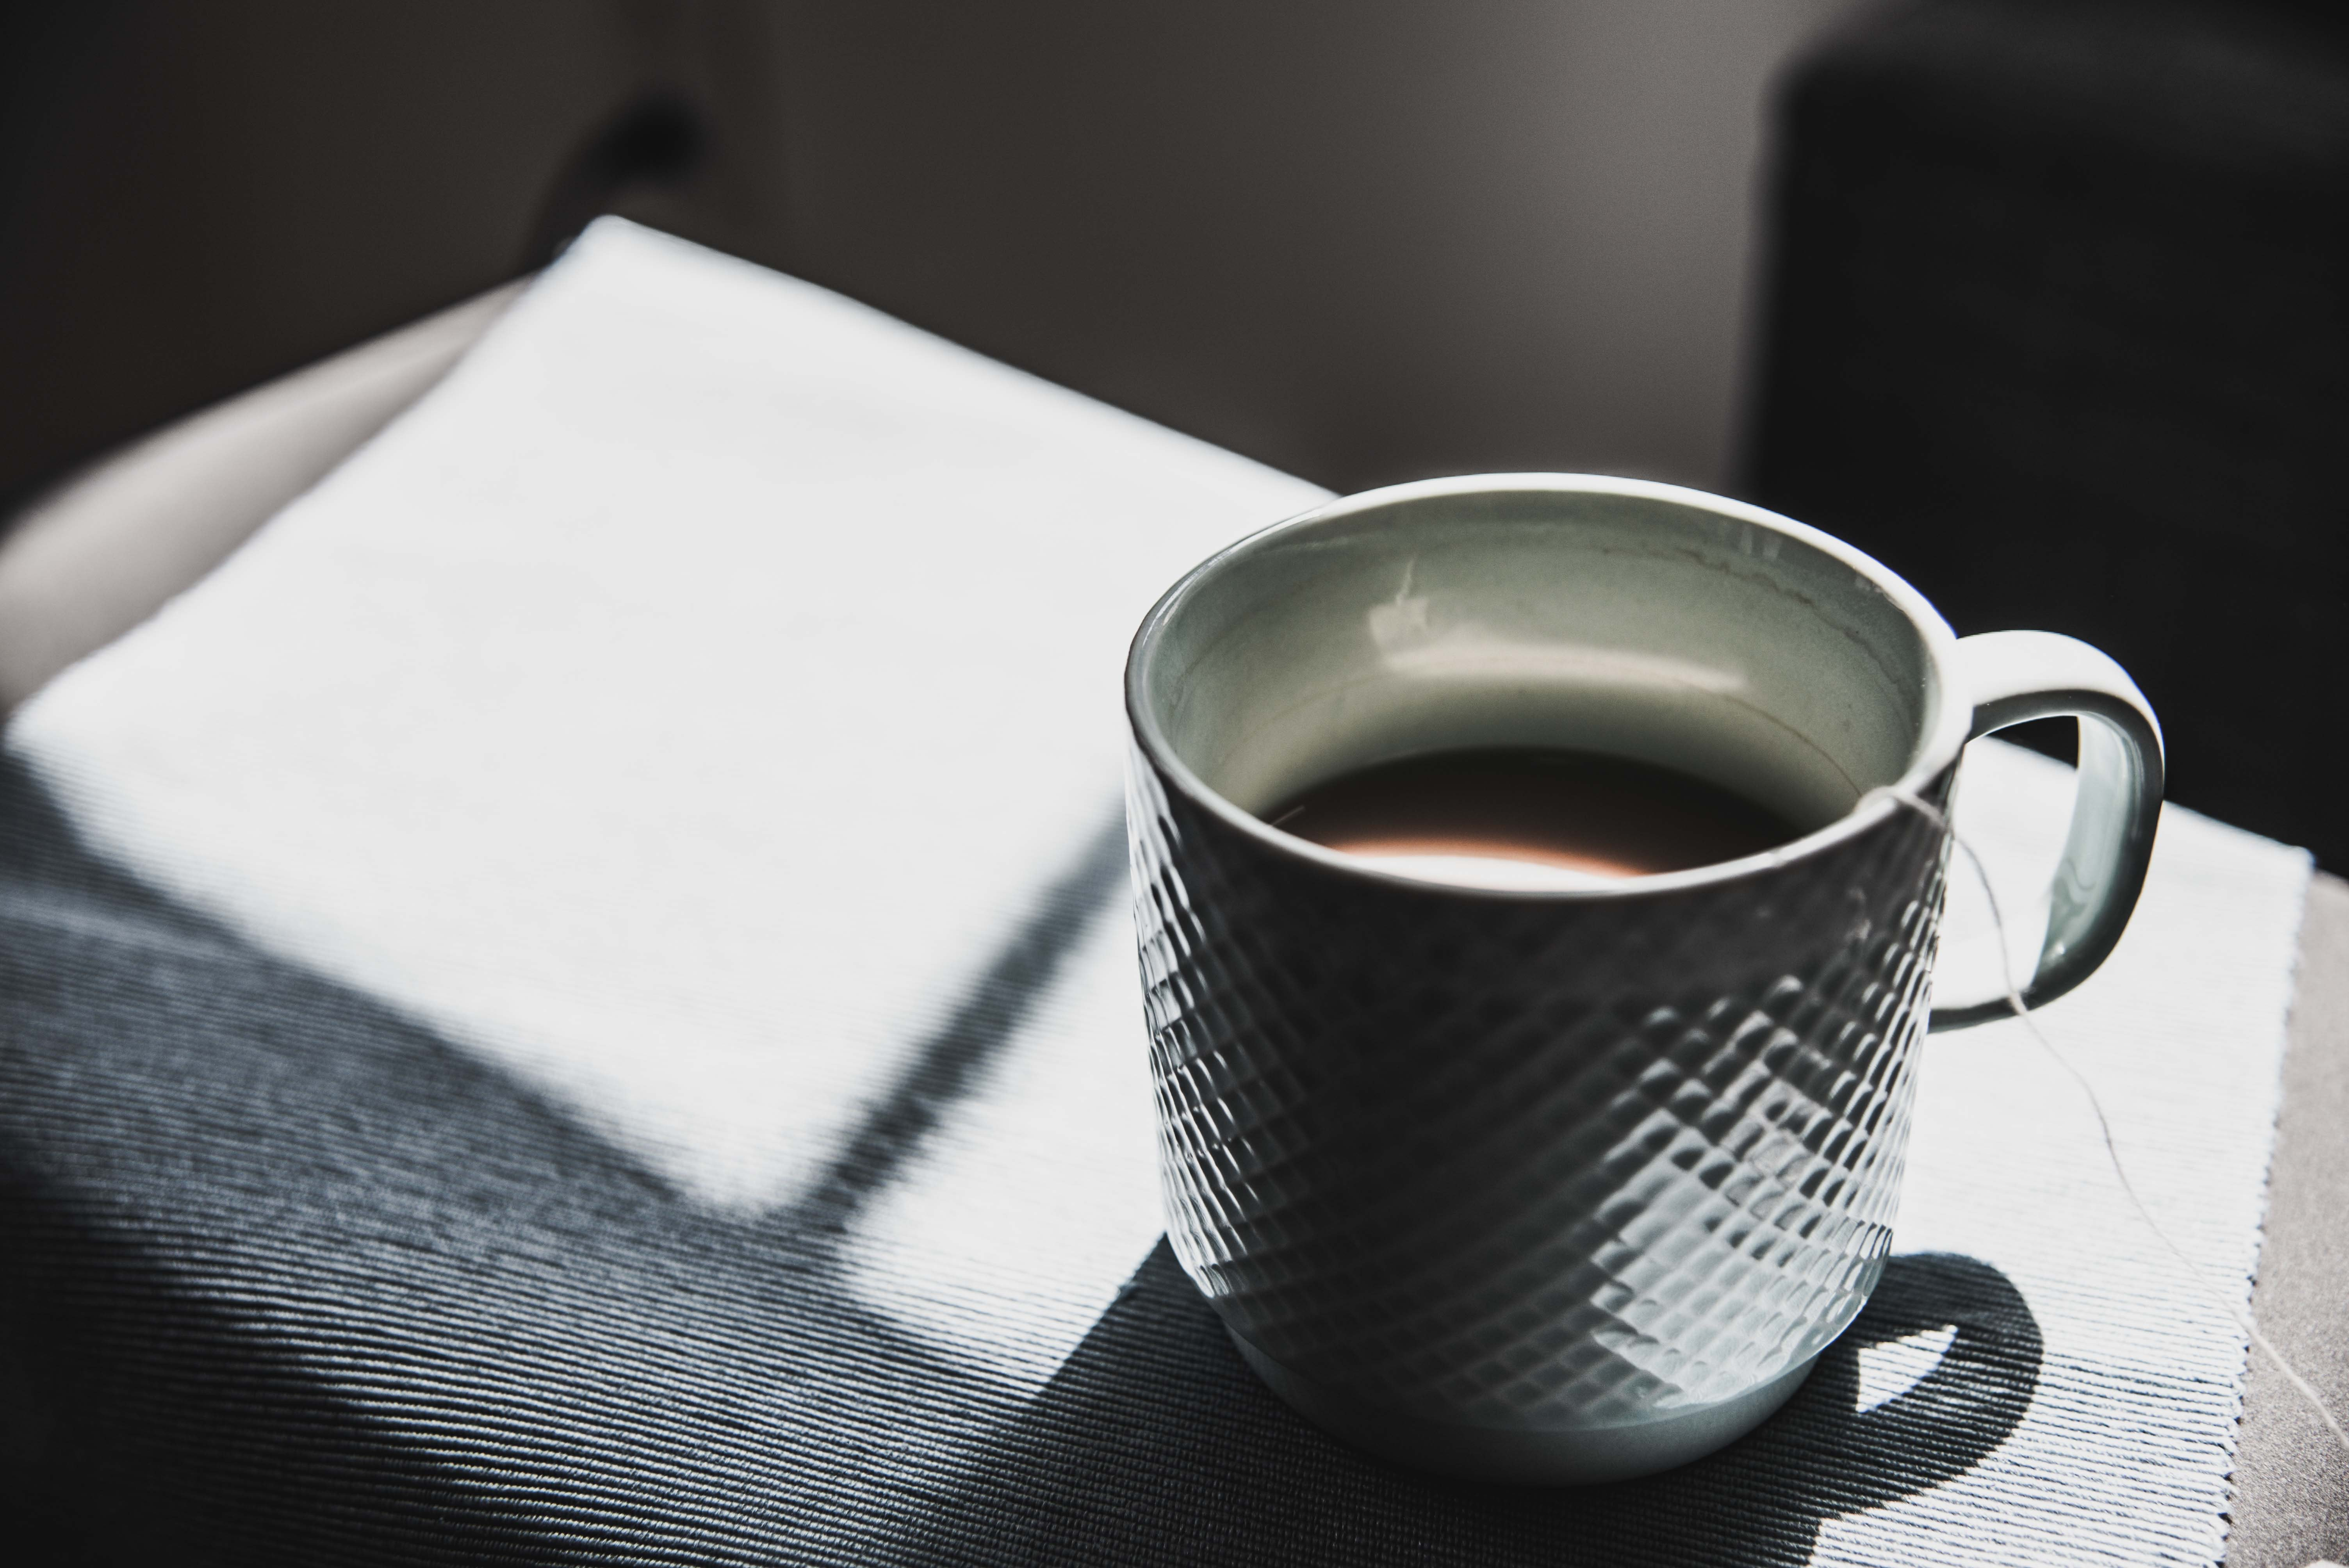 A cup of tea in a white ceramic mug on a tablecloth in the sun with a shadow